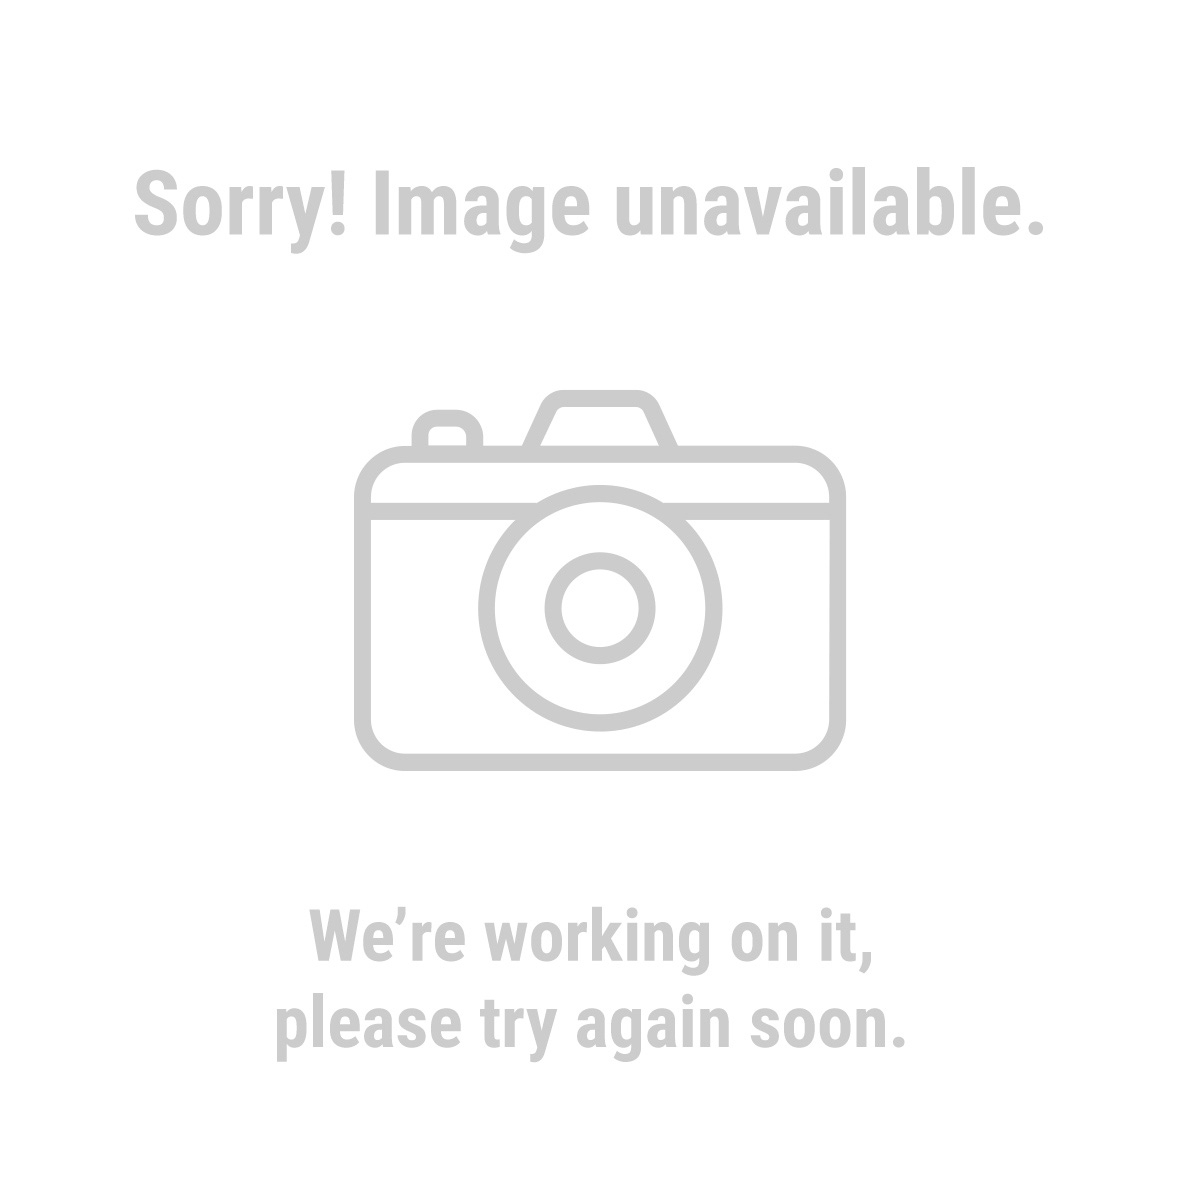 Storehouse 67580 397 Piece Metric O-Ring Assortment